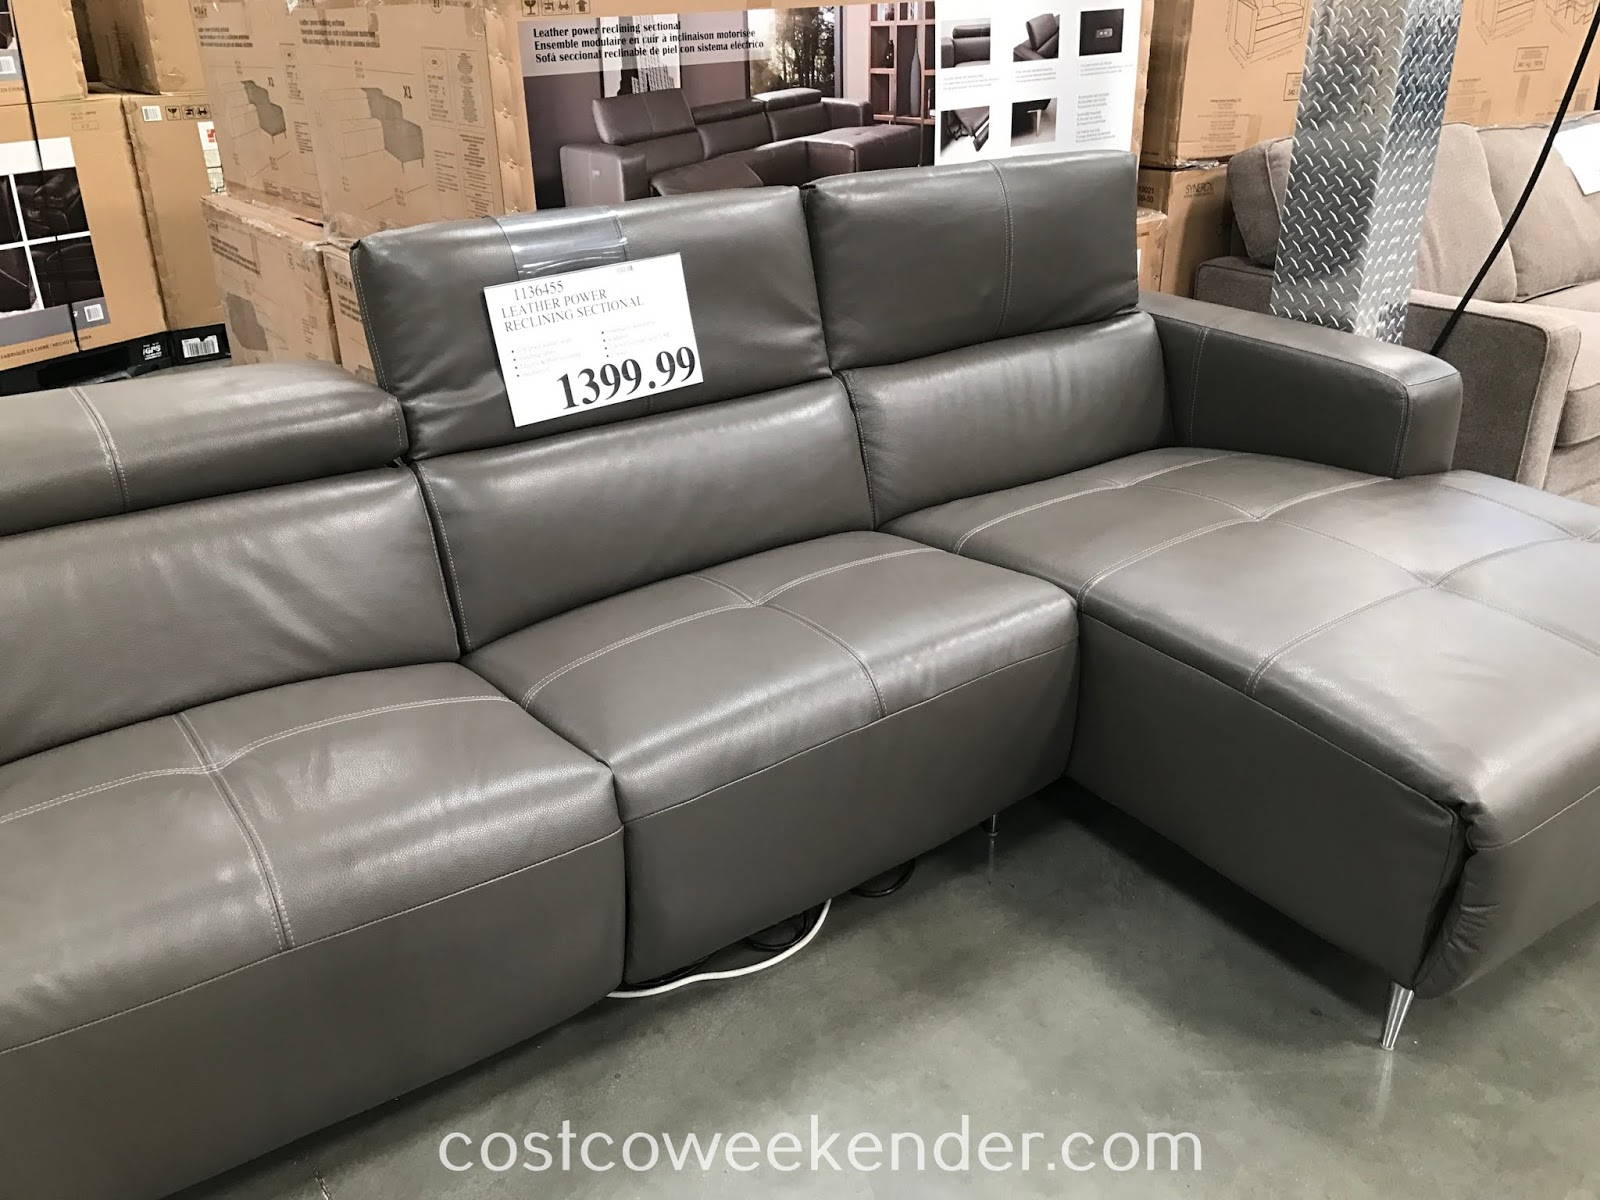 Sofa Natuzzi Electrico Leather Power Reclining Sectional Sofa Costco Weekender